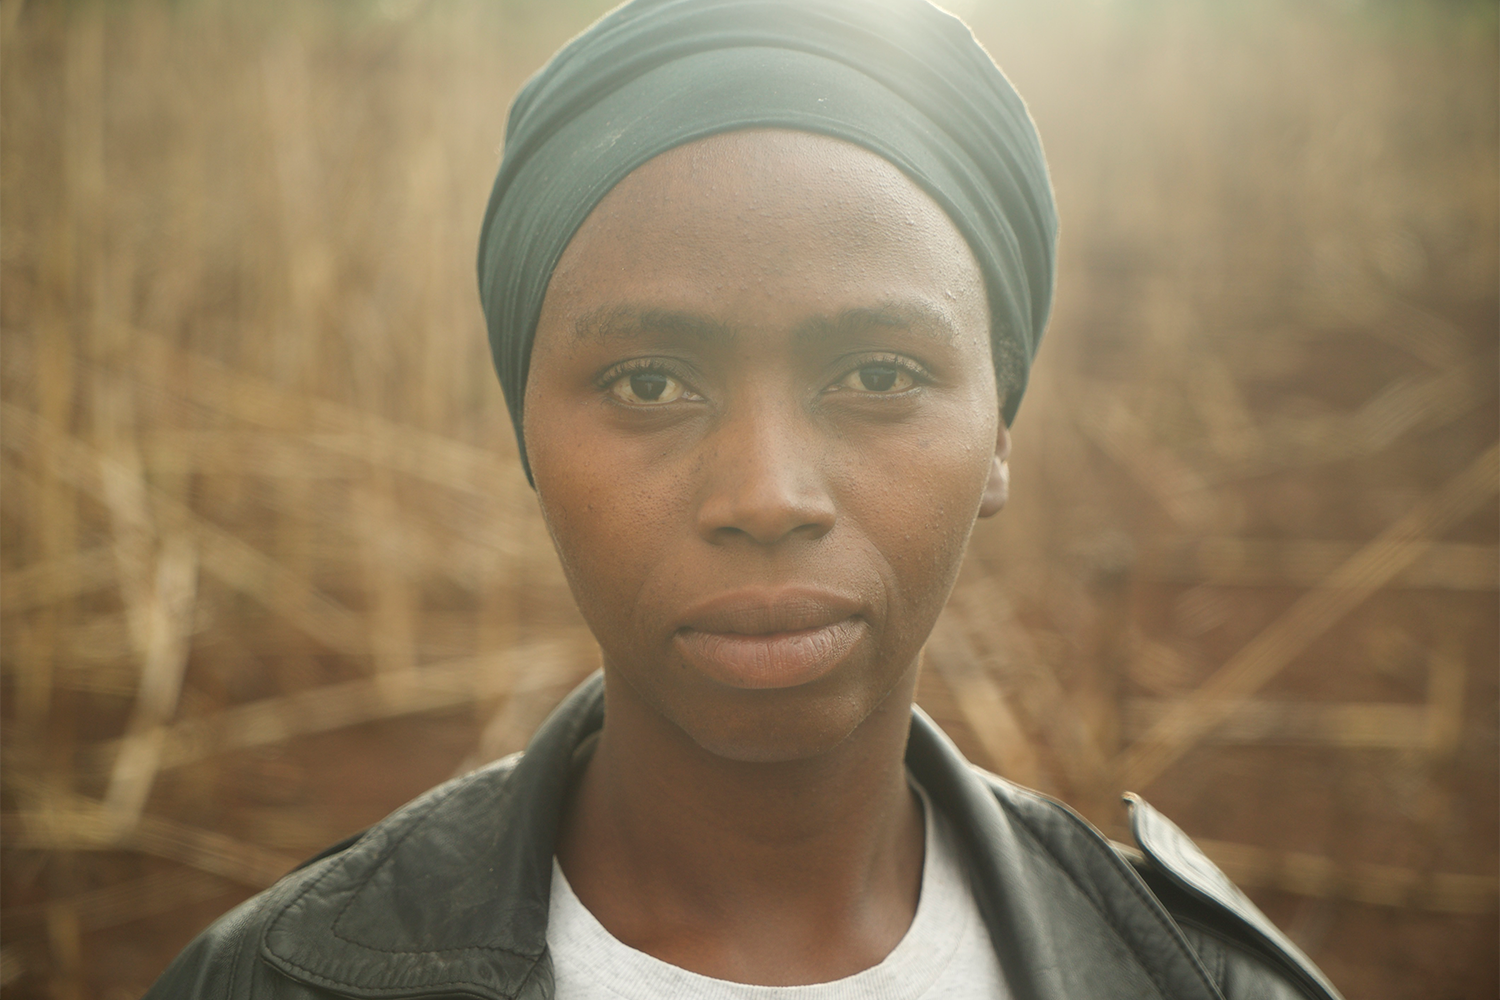 """A still from the trailer for the """"Zaza Rising"""" documentary, created to spread the word about one woman's effort to open a bakery and build a better life for other women in her community."""